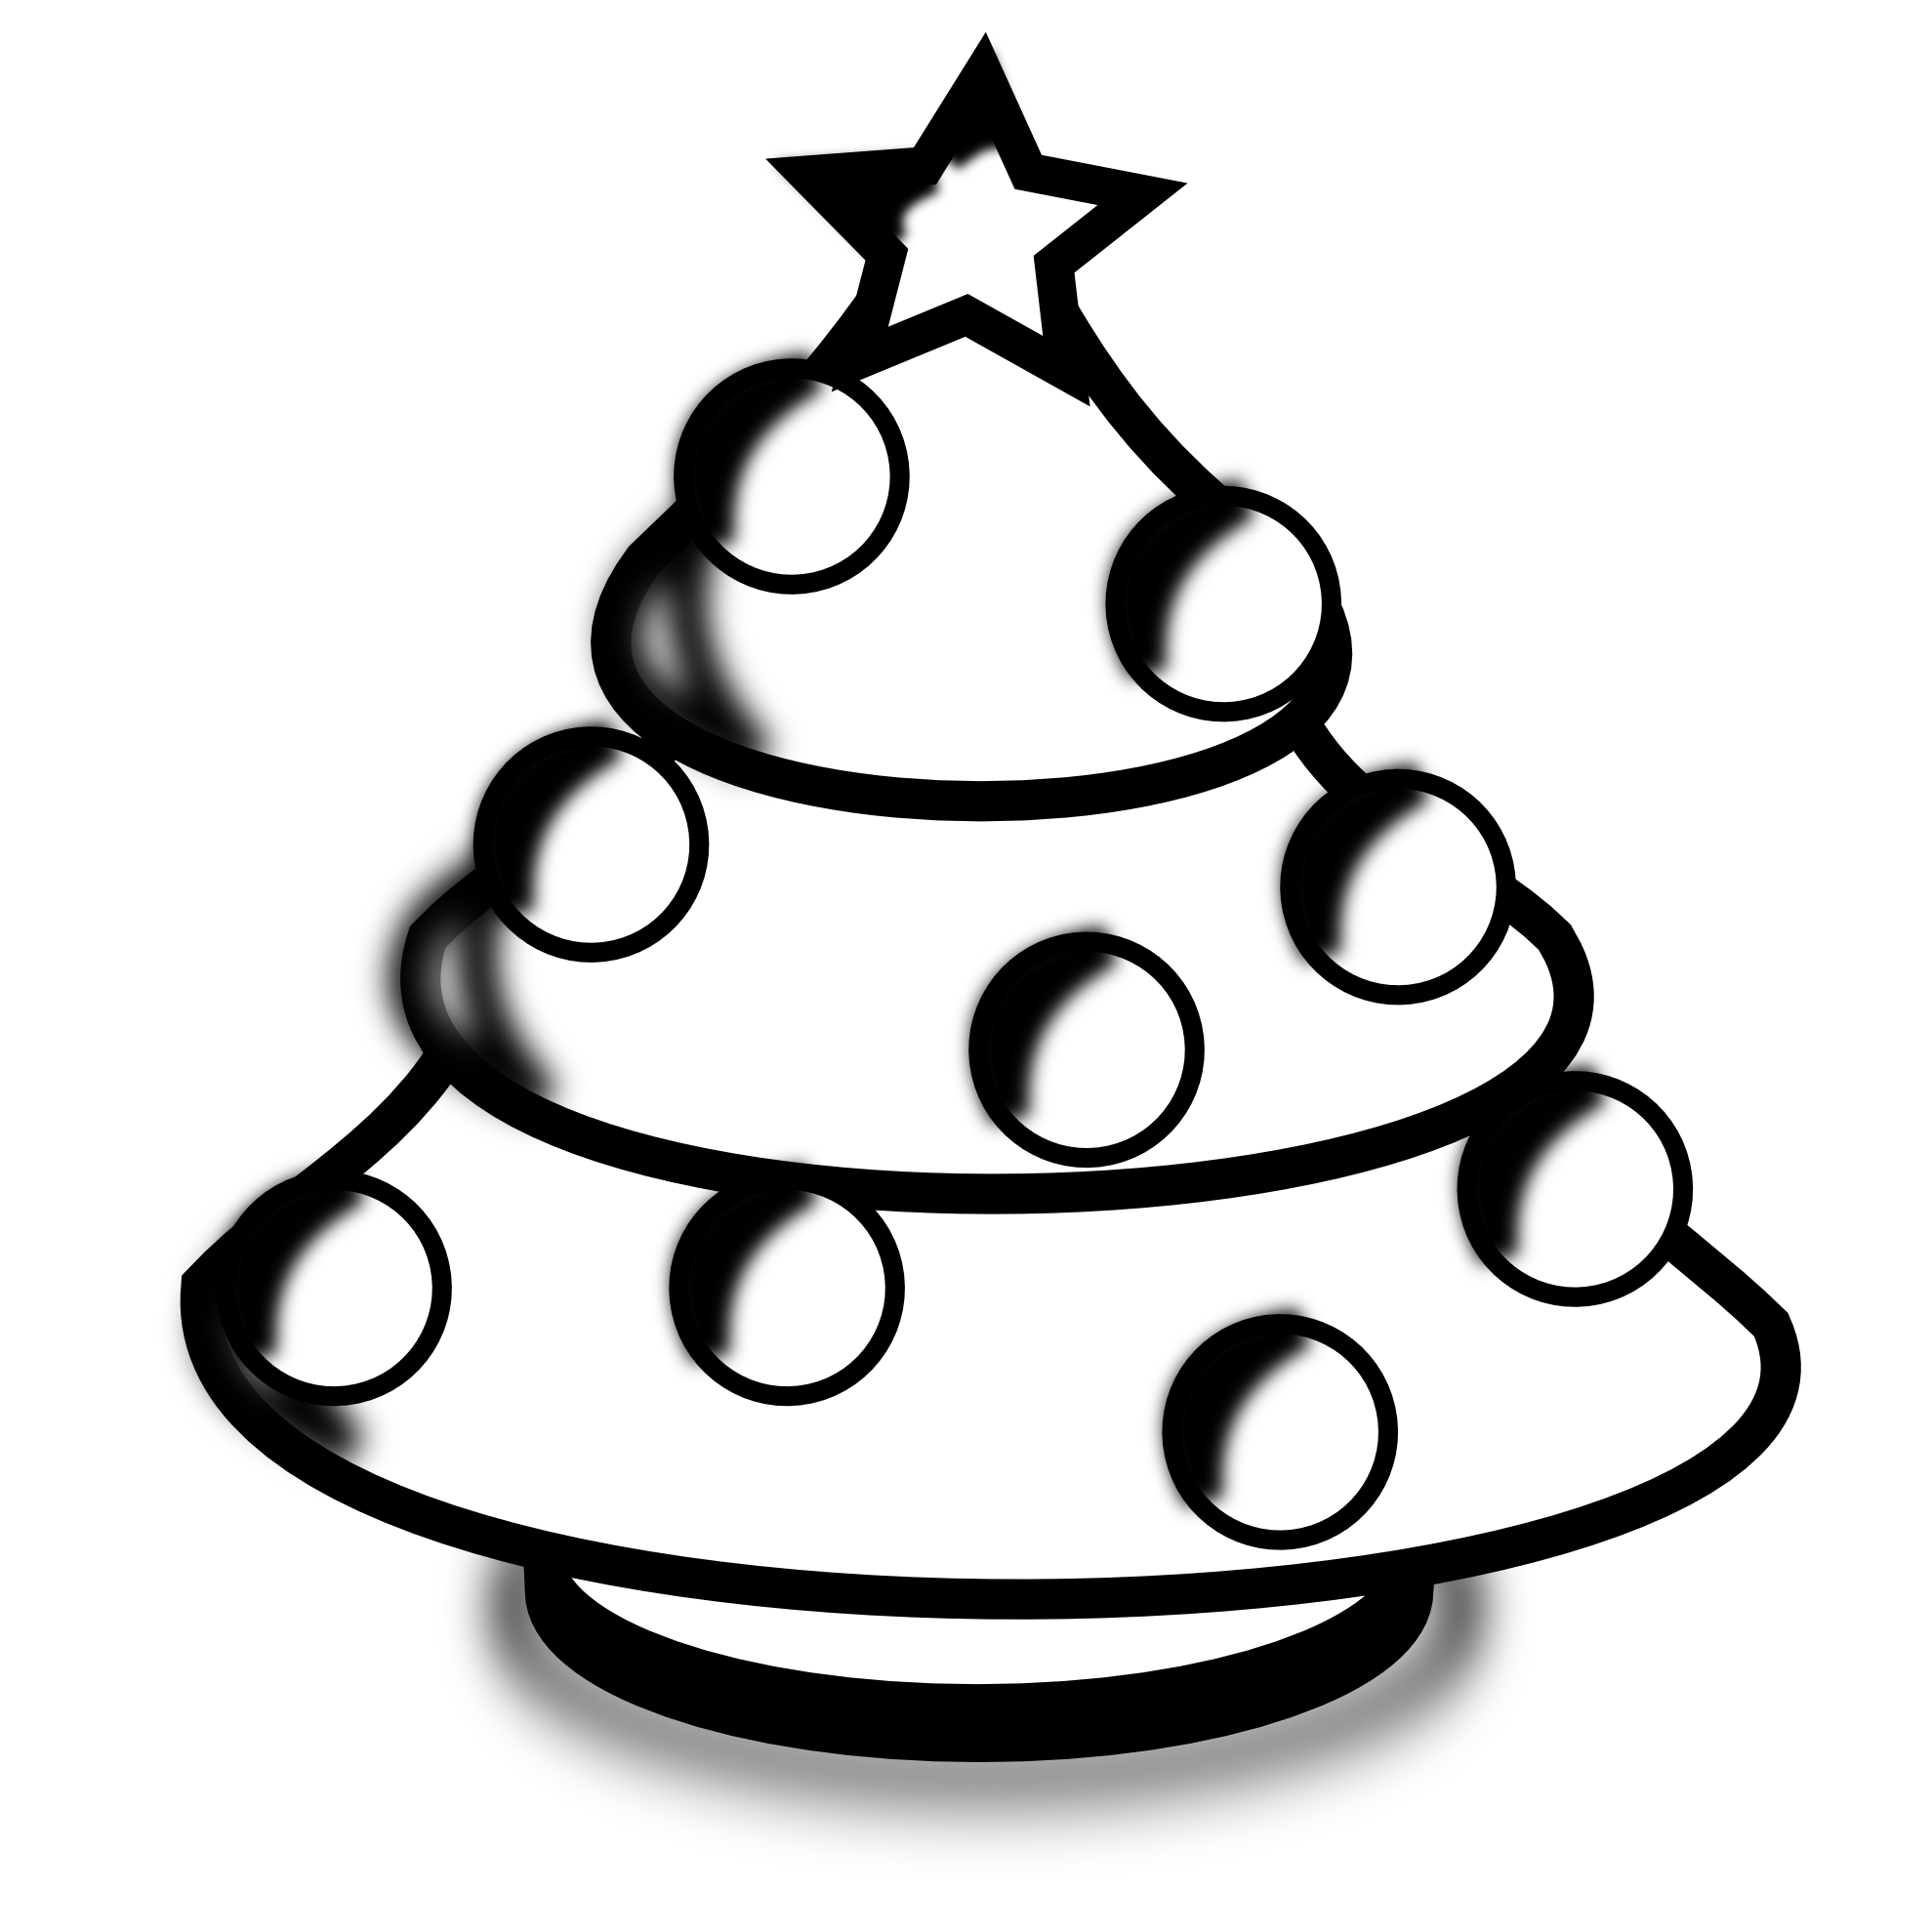 Merry Christmas Clip Art Black And White Hd Images Christmas Day